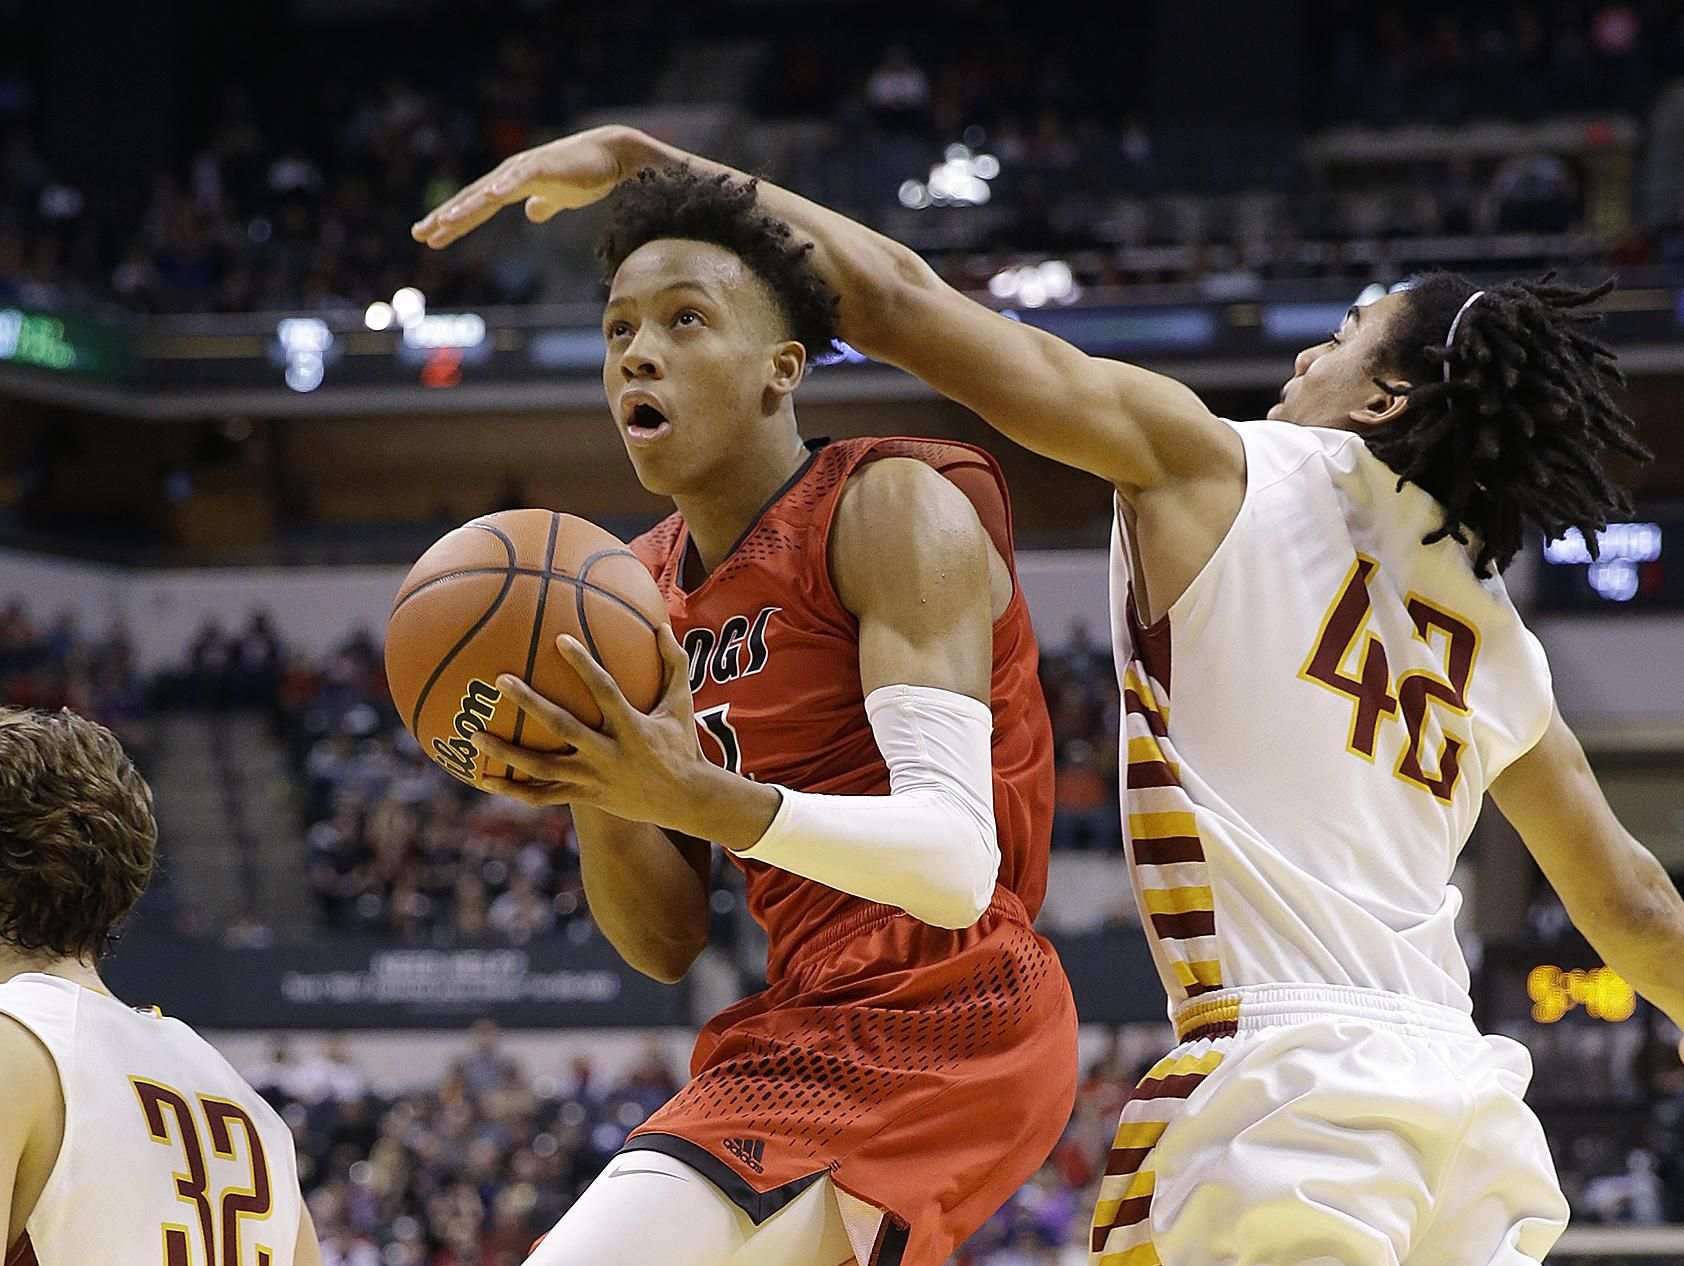 New Albany Bulldogs Romeo Langford (1) drives by McCutcheon Mavericks Billy Loft (42) in the second half of the IHSAA 4A Boys Basketball State Final game Saturday, Mar 26, 2016, evening at Bankers Life Fieldhouse. The New Albany Bulldogs defeated the McCutcheon Mavericks 62-59.